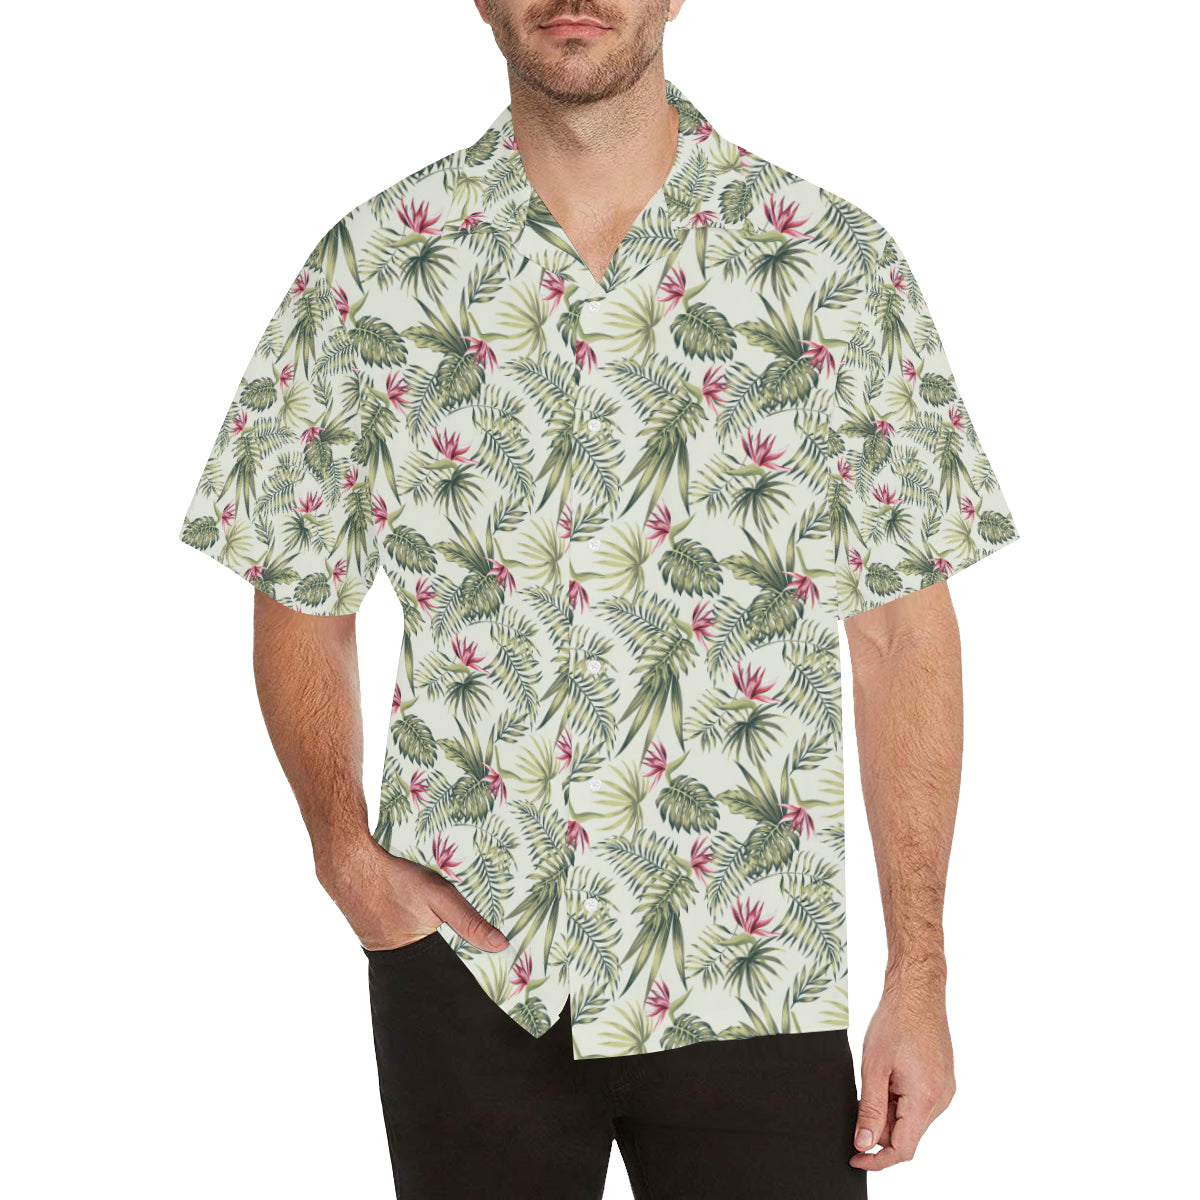 Bird Of Paradise Pattern Print Design 04 Hawaiian Shirt